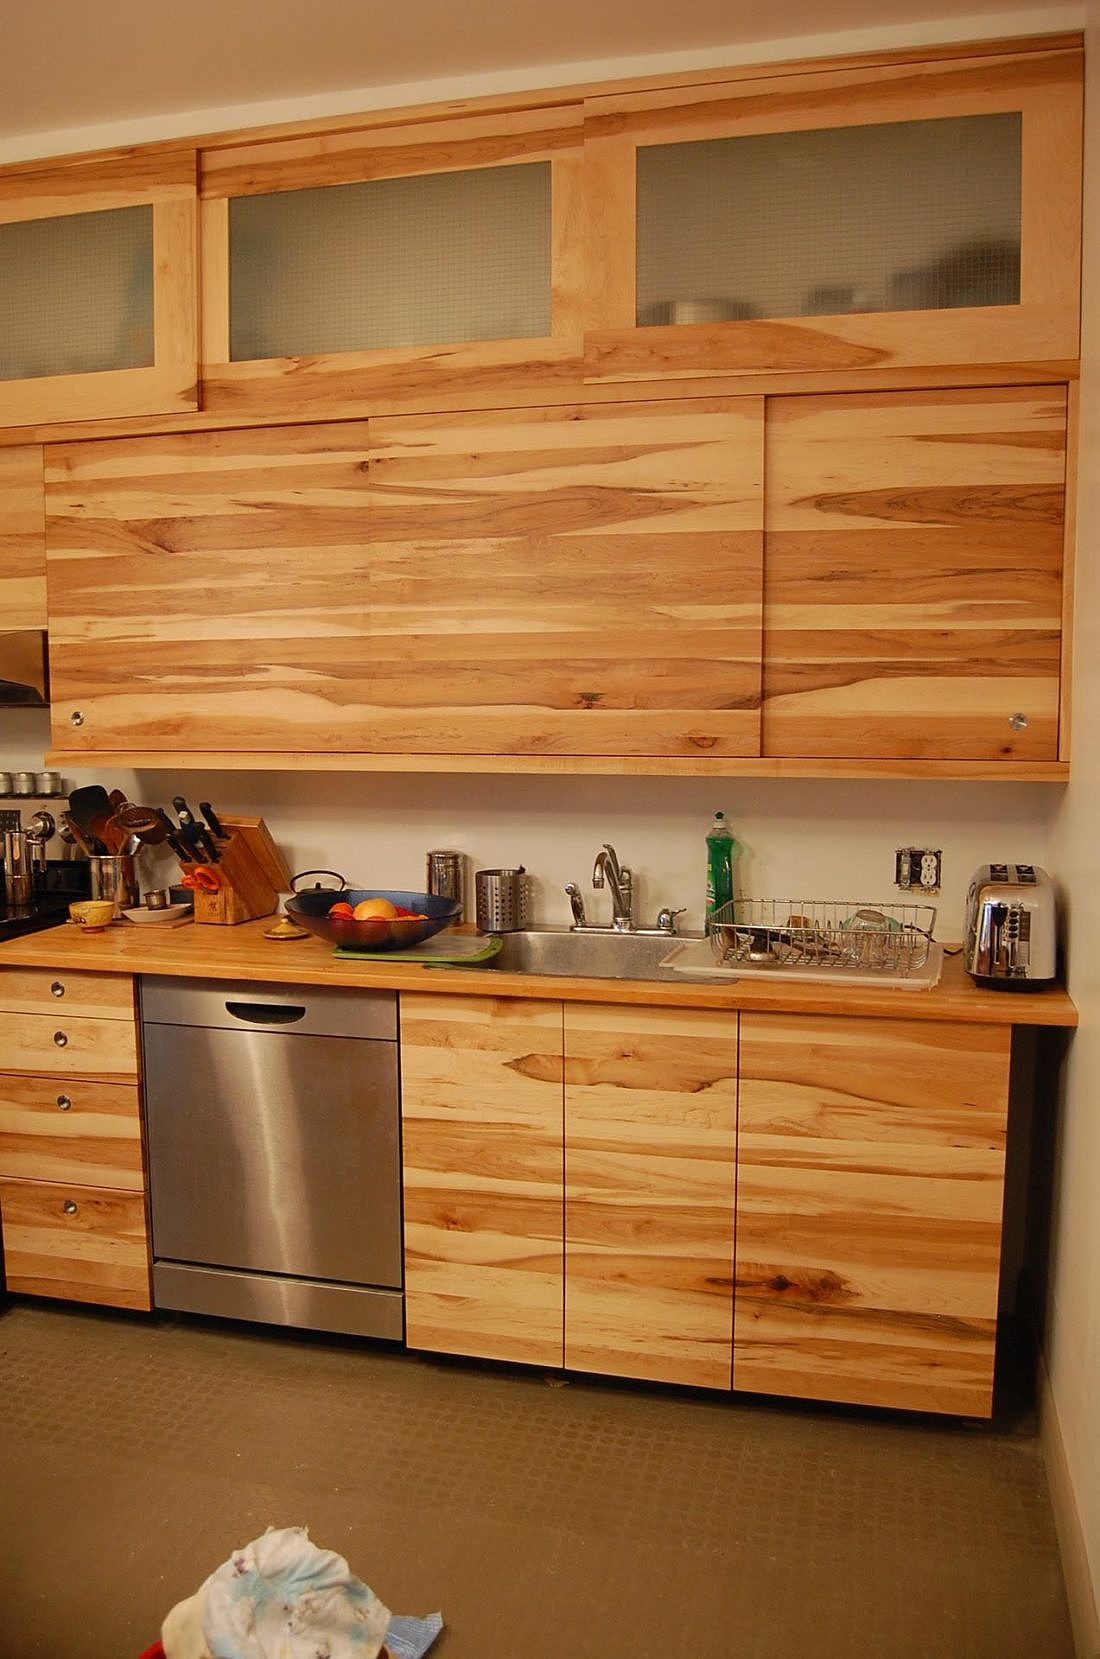 armoires-cuisine-bois-massif-mobilier-montreal